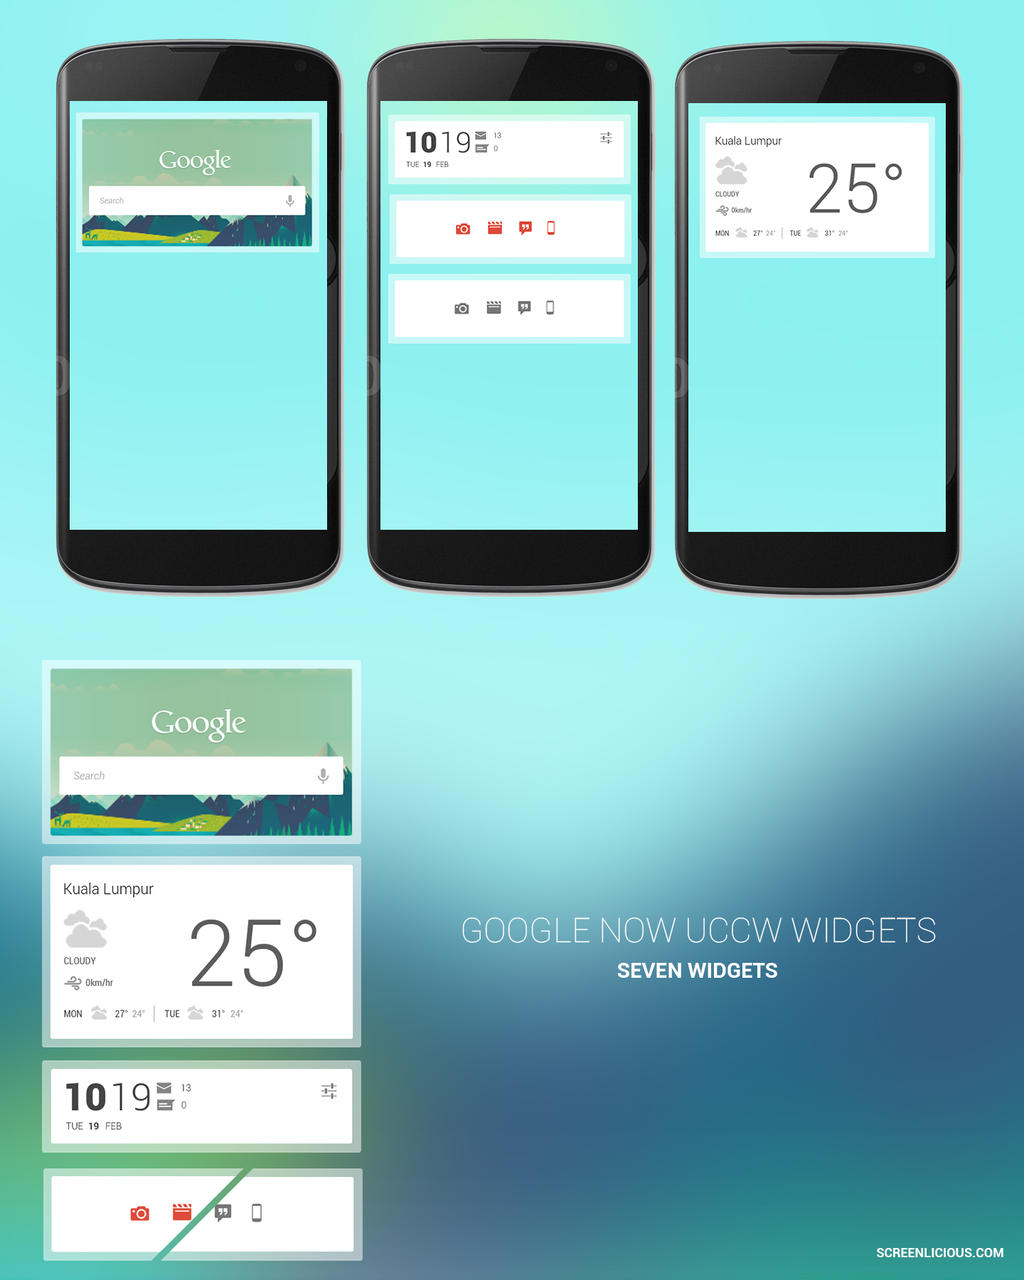 Google Now UCCW Widgets